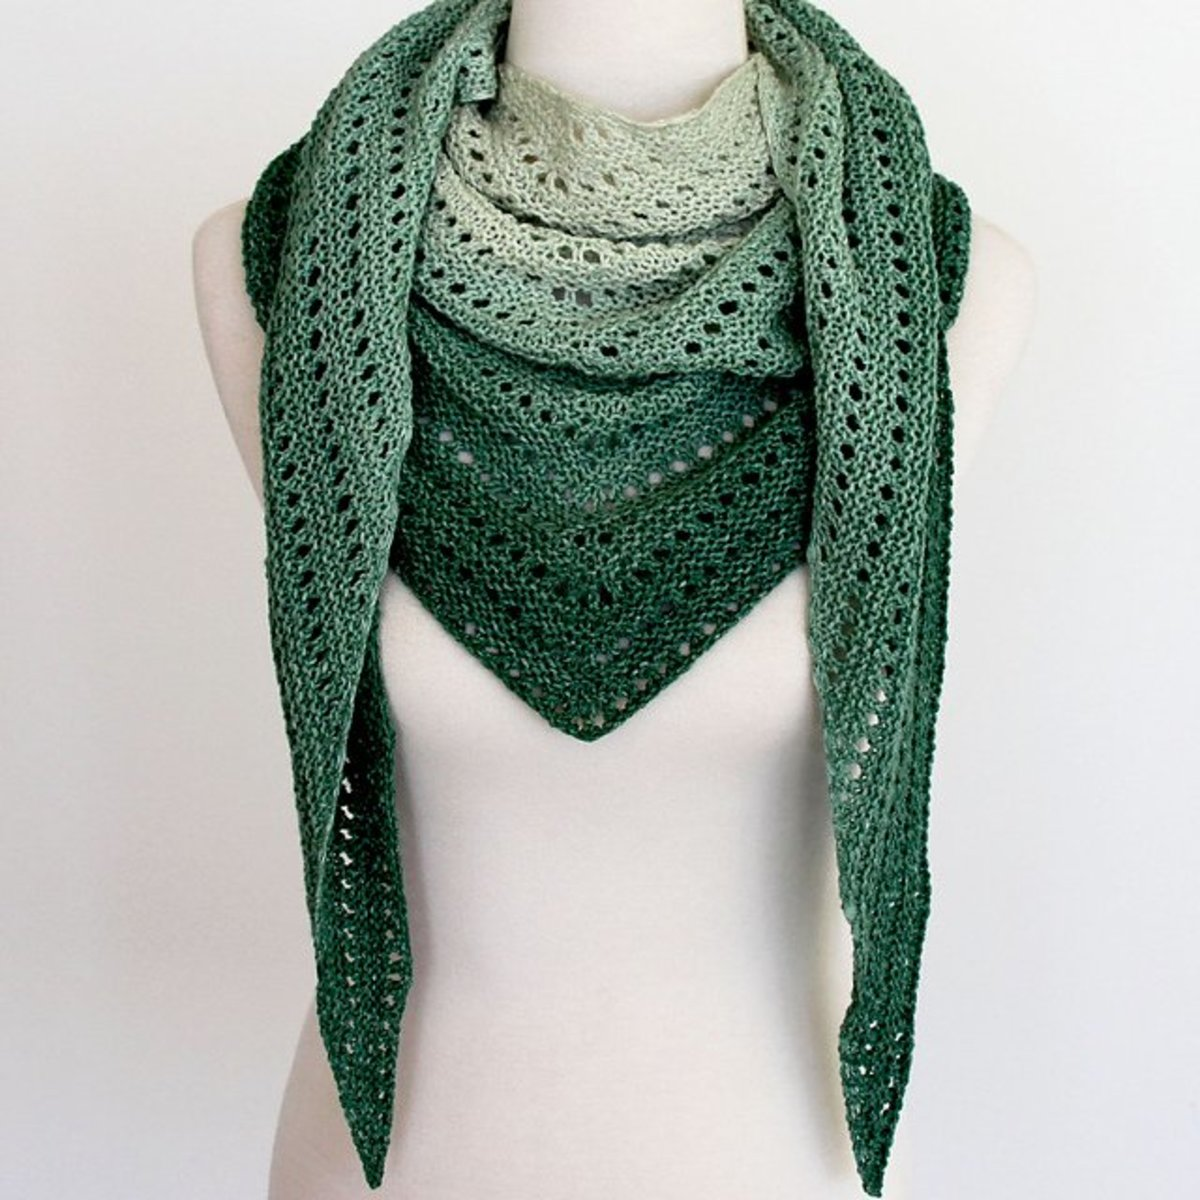 Knit shawl with a green ombre palette.